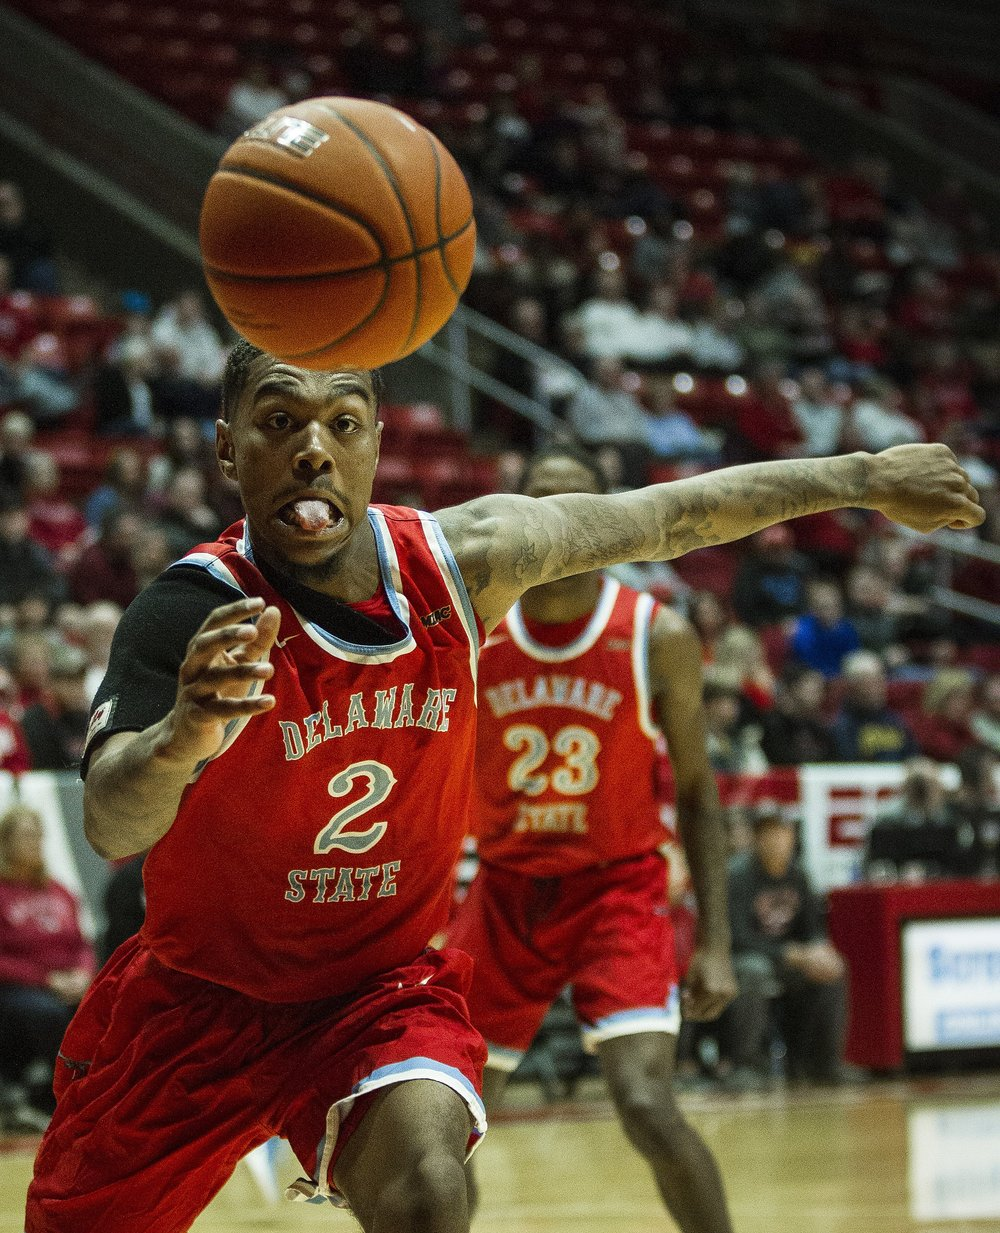 Delaware State guard Kevin Larkin reaches for the ball, Dec. 29, at Worthen Arena.  Photos for Ball State Photo Services, Marketing and Communications